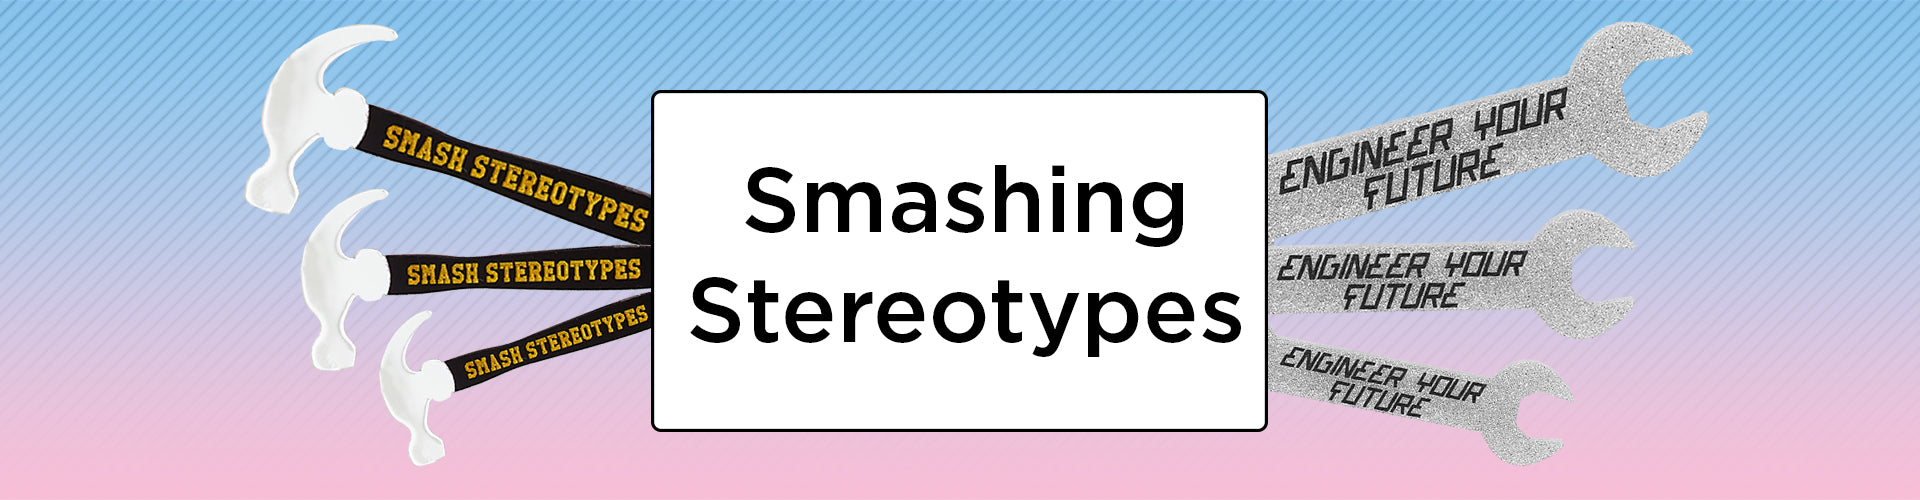 Smashing Stereotypes with Fawcett Society